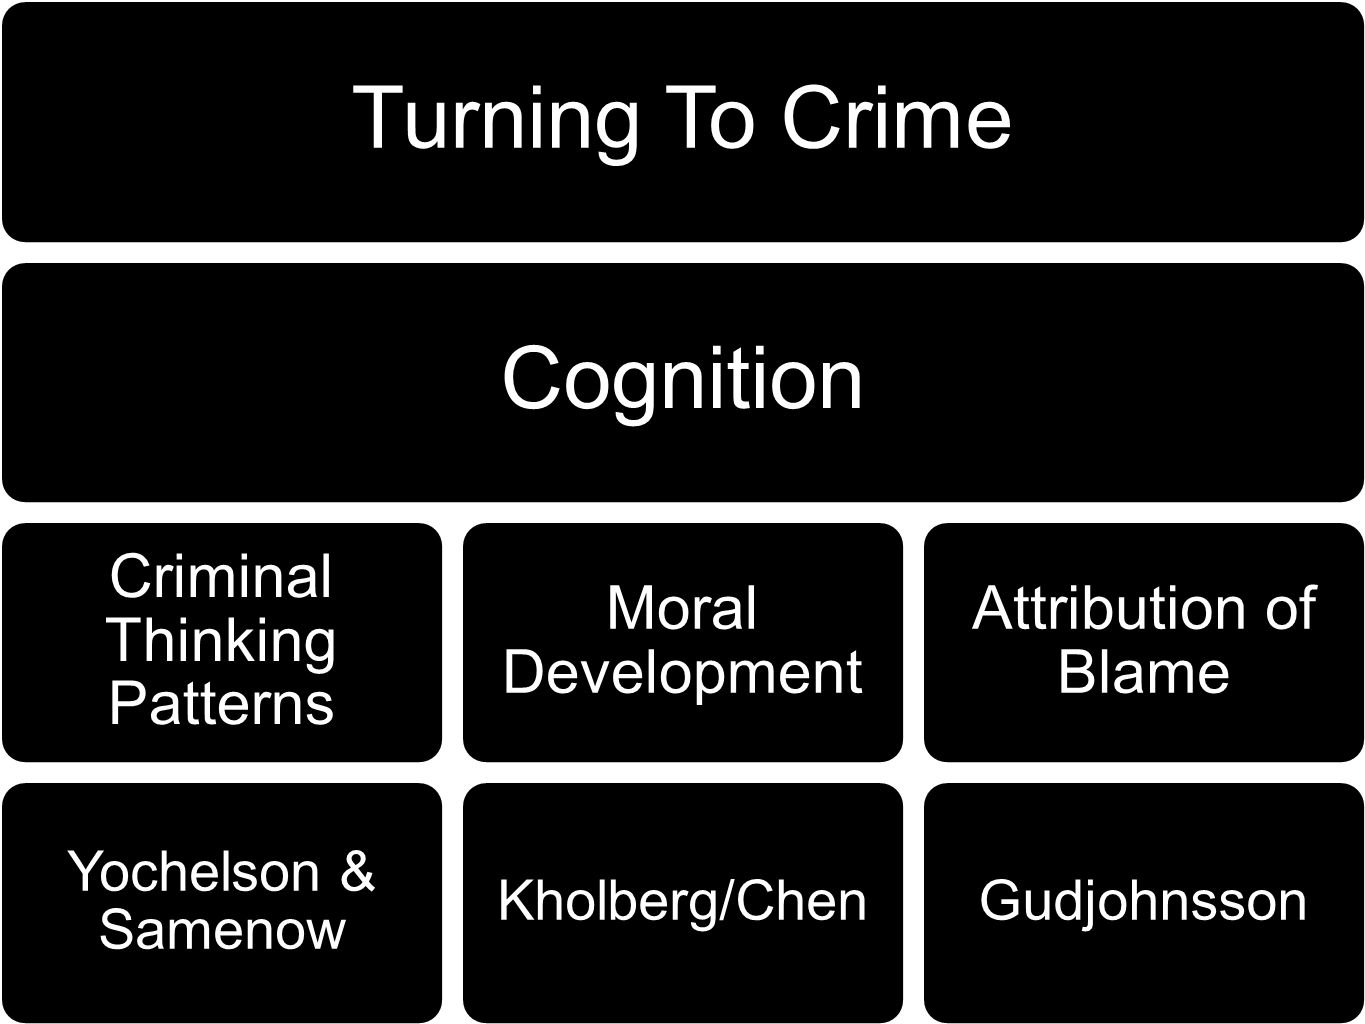 Criminal Thinking Patterns